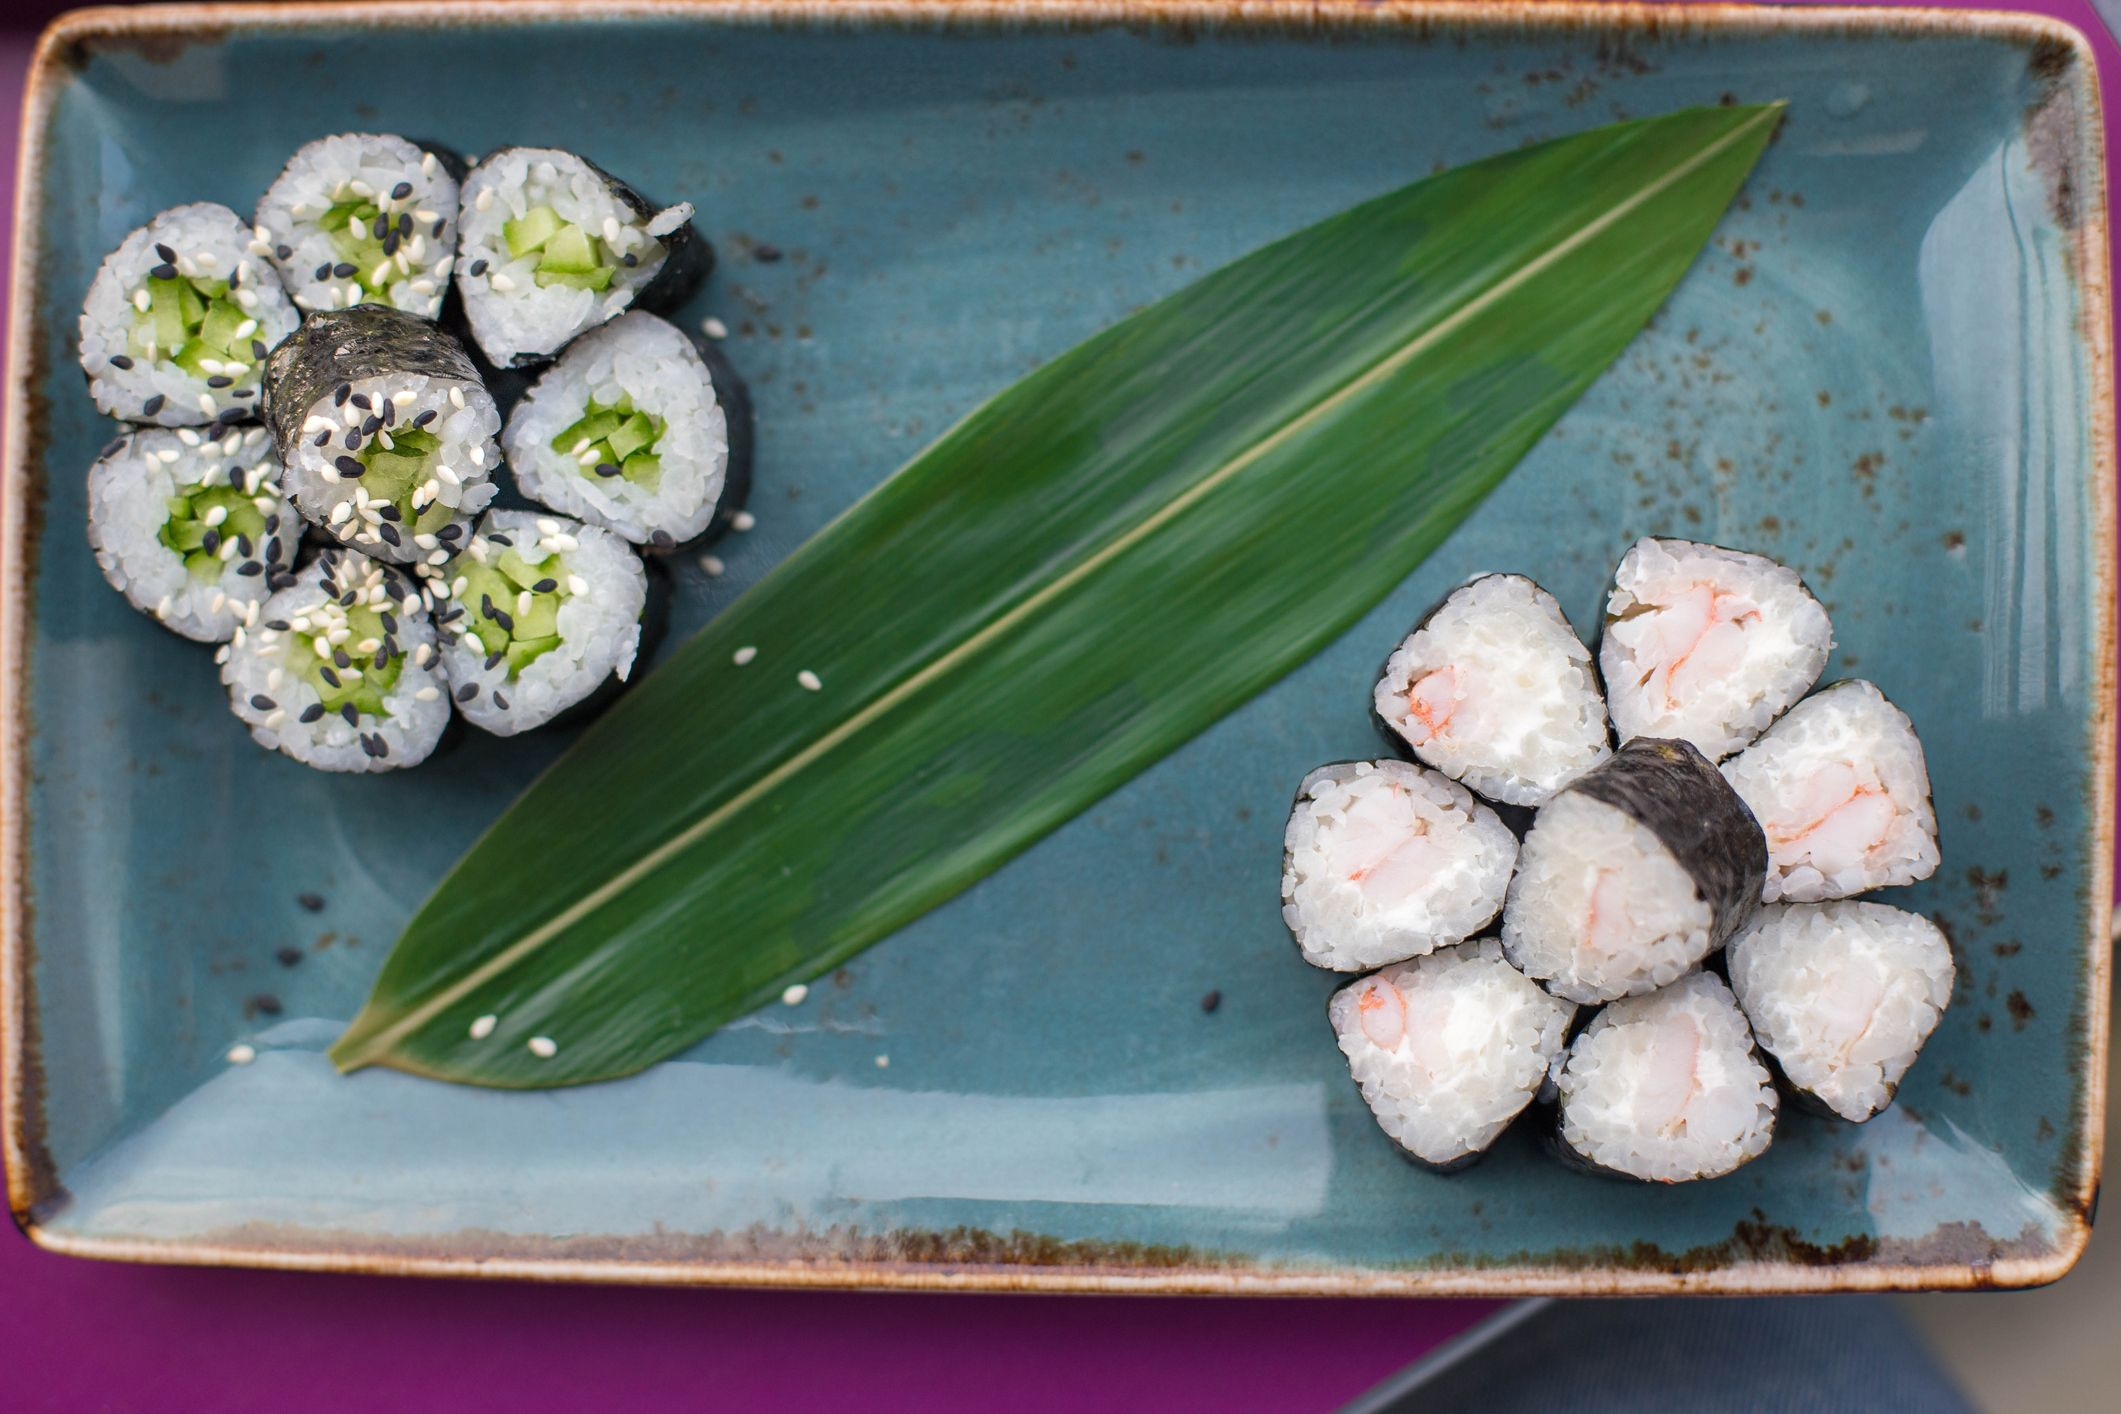 Vegetarian sushi with rice and vegetables on turquoise ceramic dishes.